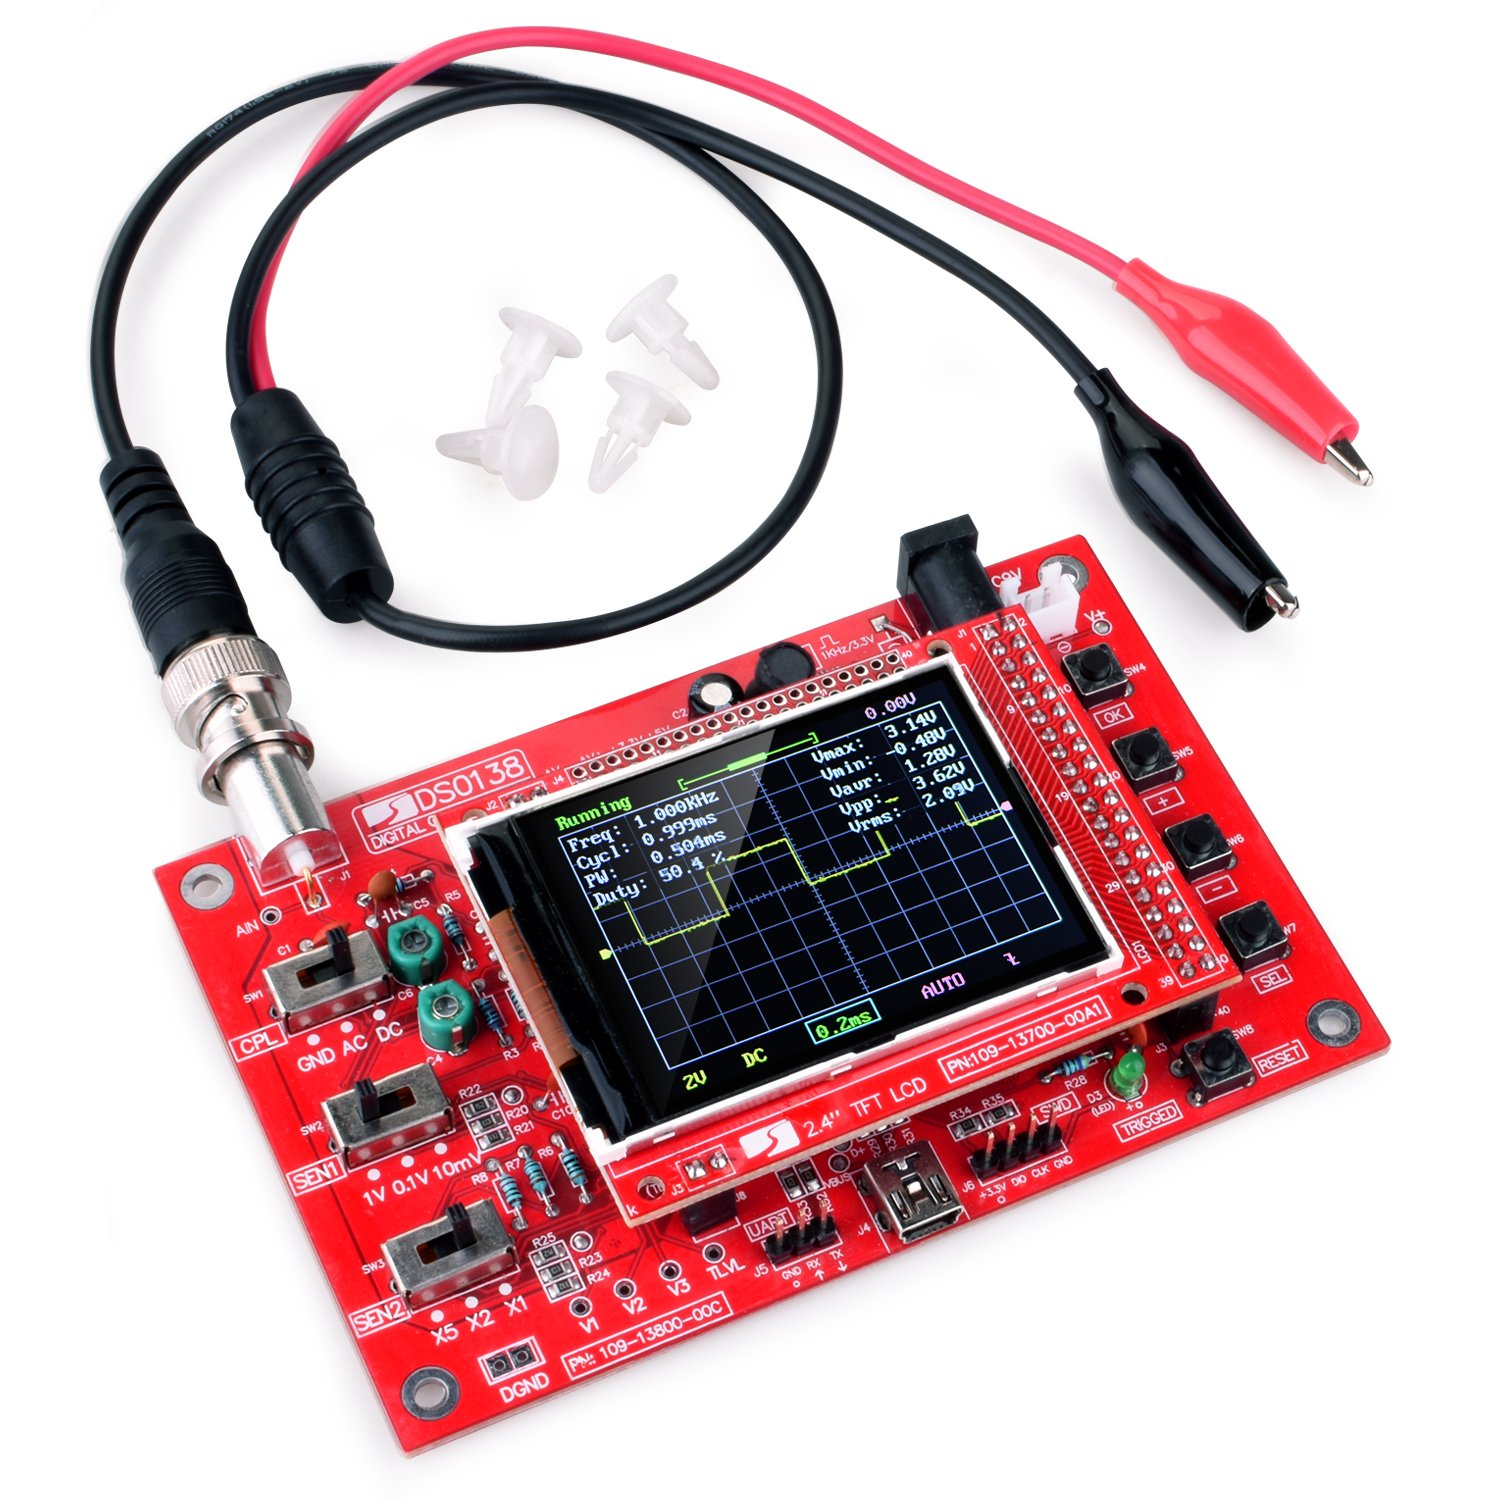 Quimat Handheld Pocket-size Digital Oscilloscope Kit Open Source 2.4 inch TFT 1Msps with Probe Assembled vision DSO138 13805K-UK